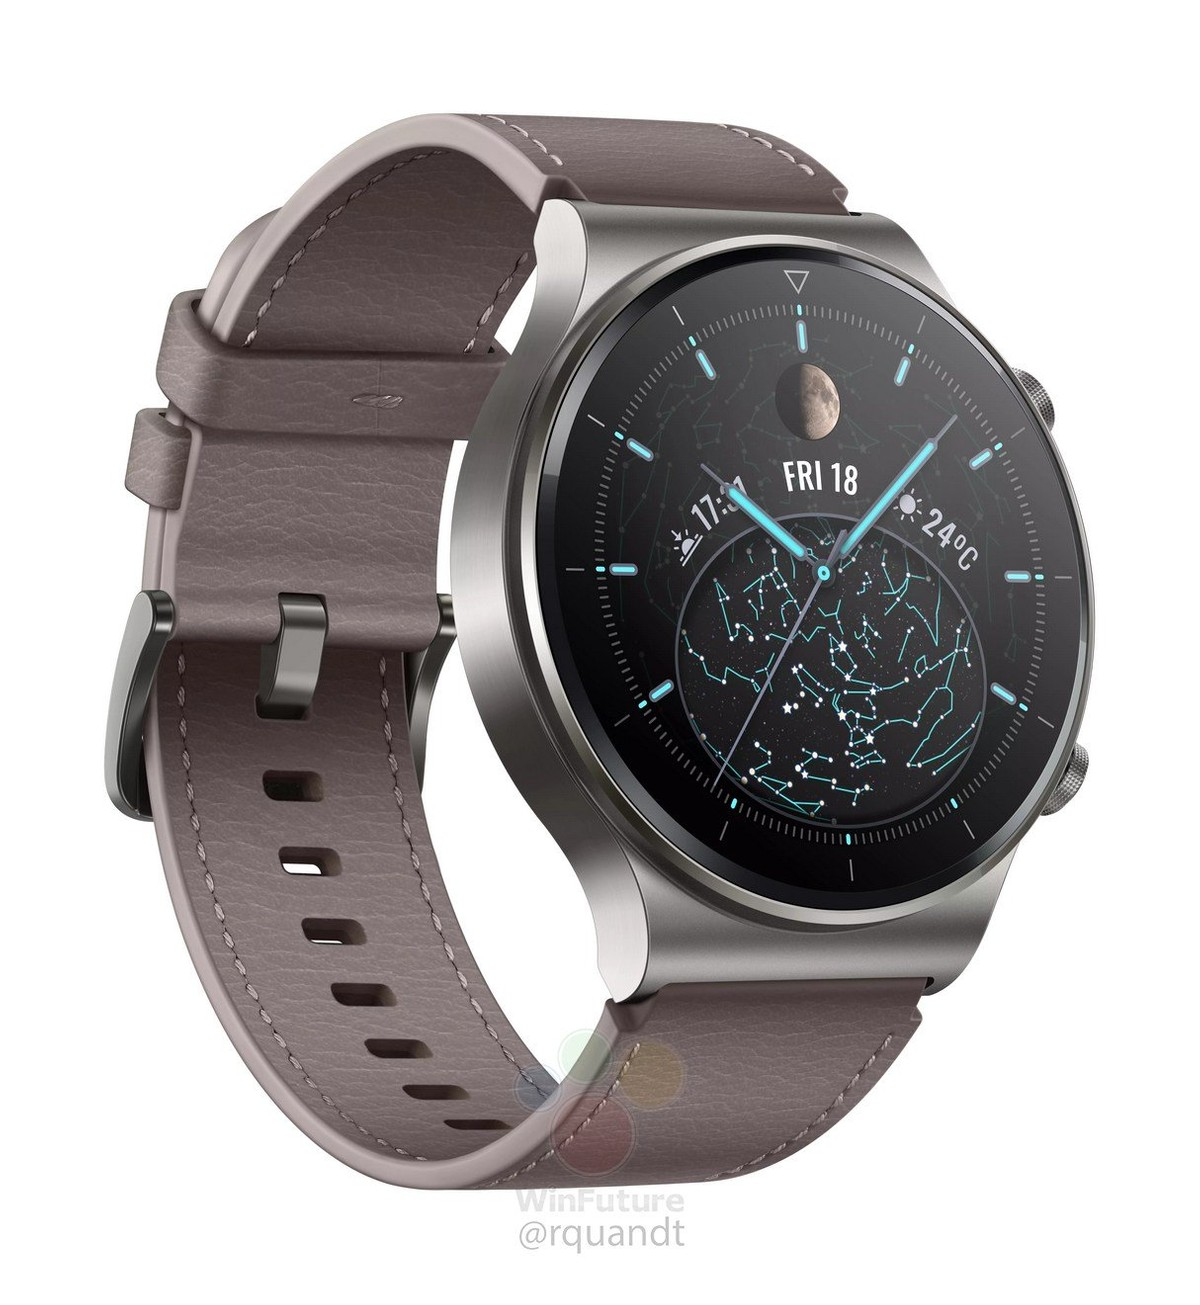 Huawei Watch GT2 Pro leaked in images; Supports wireless charging